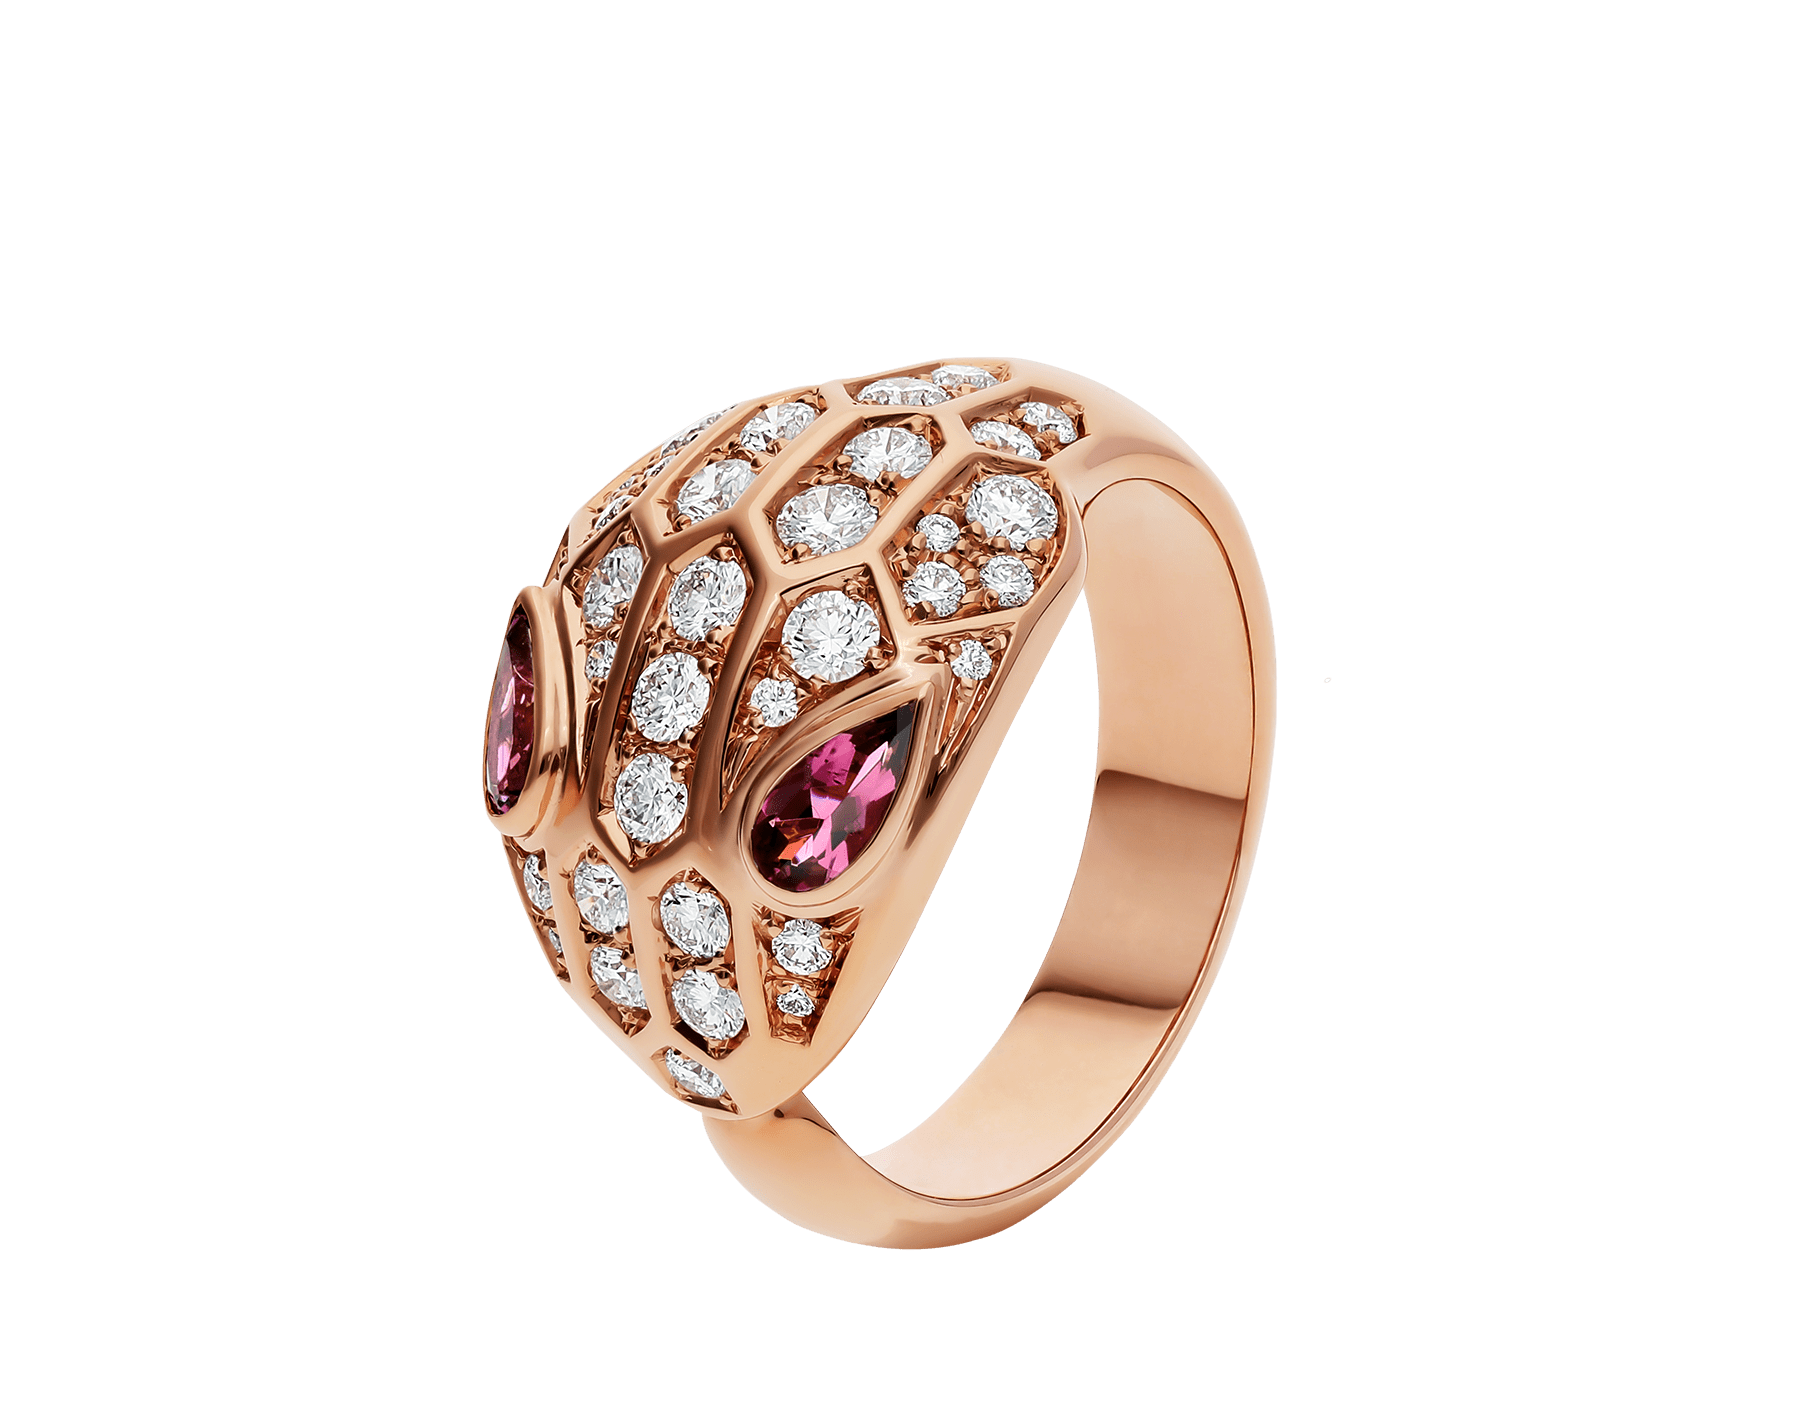 Serpenti ring in 18 kt rose gold, set with rubellite eyes and full pavé diamonds. AN857806 image 1